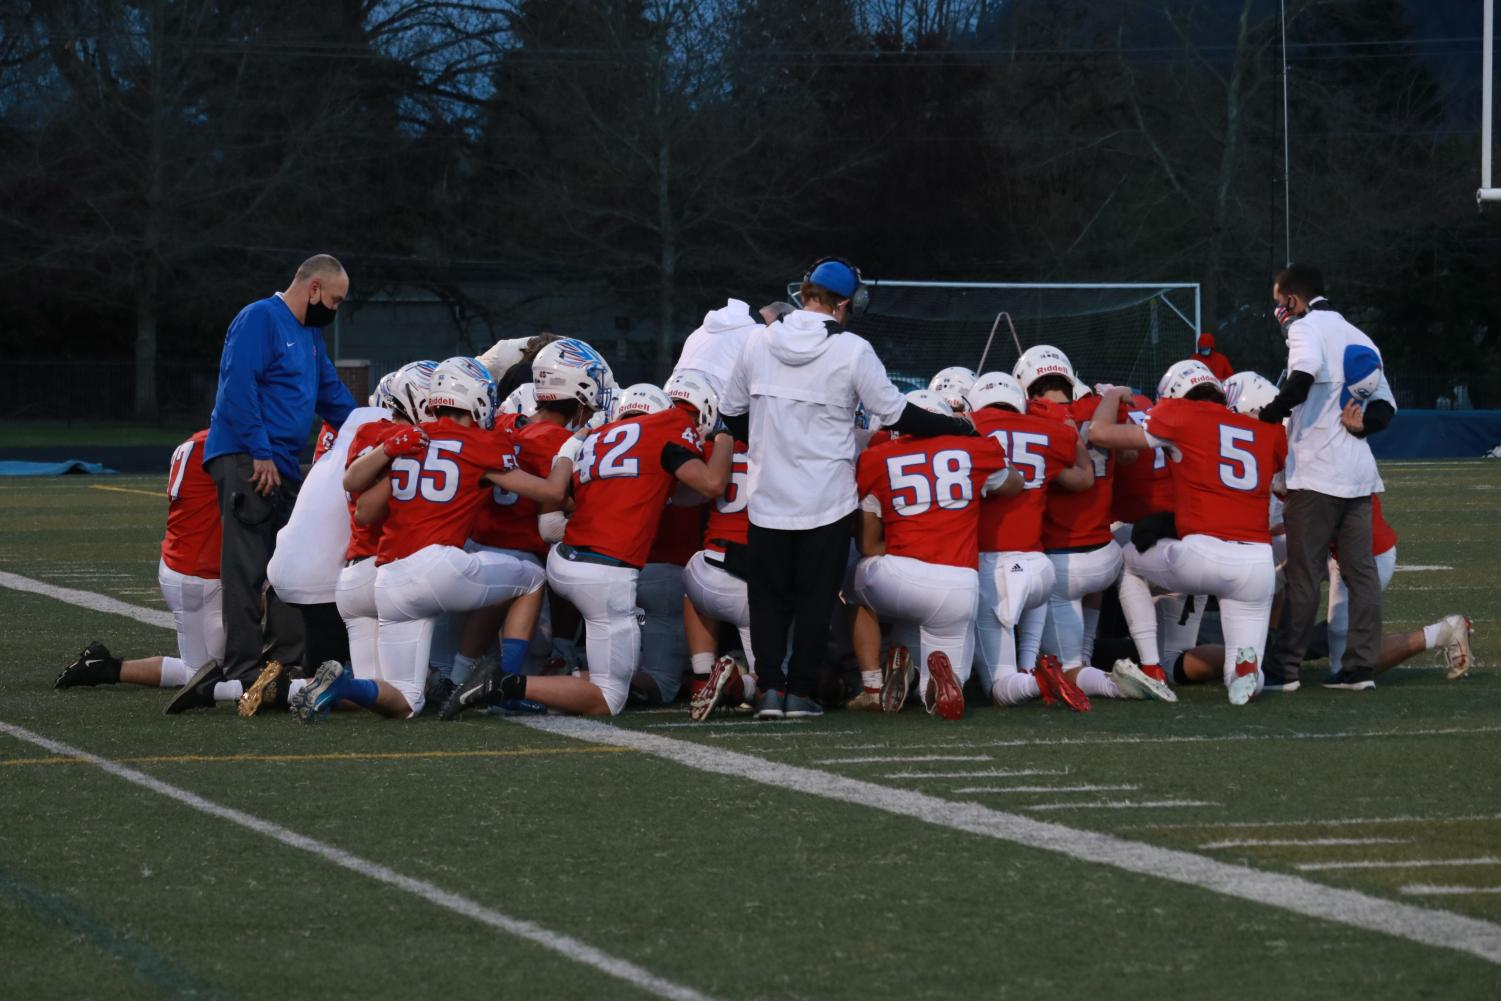 Football+Team+Wins+Against+Ridgeview+to+Close+Out+the+Season